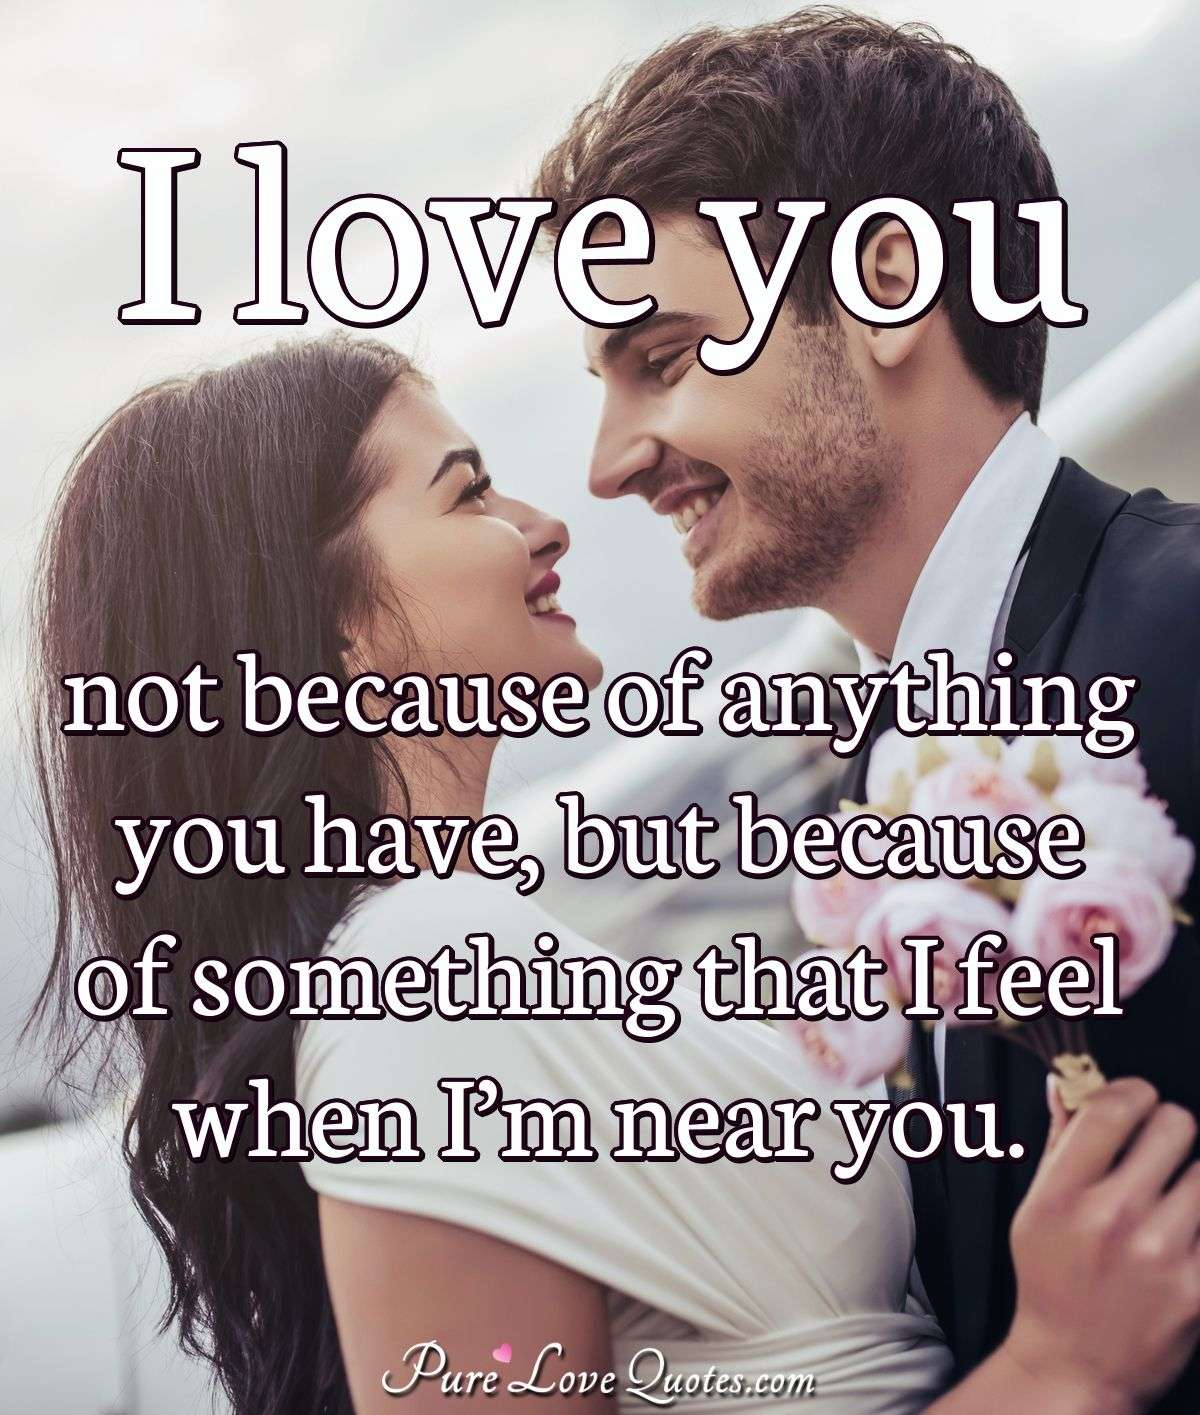 I love you not because of anything you have, but because of something that I feel when I'm near you. - Anonymous